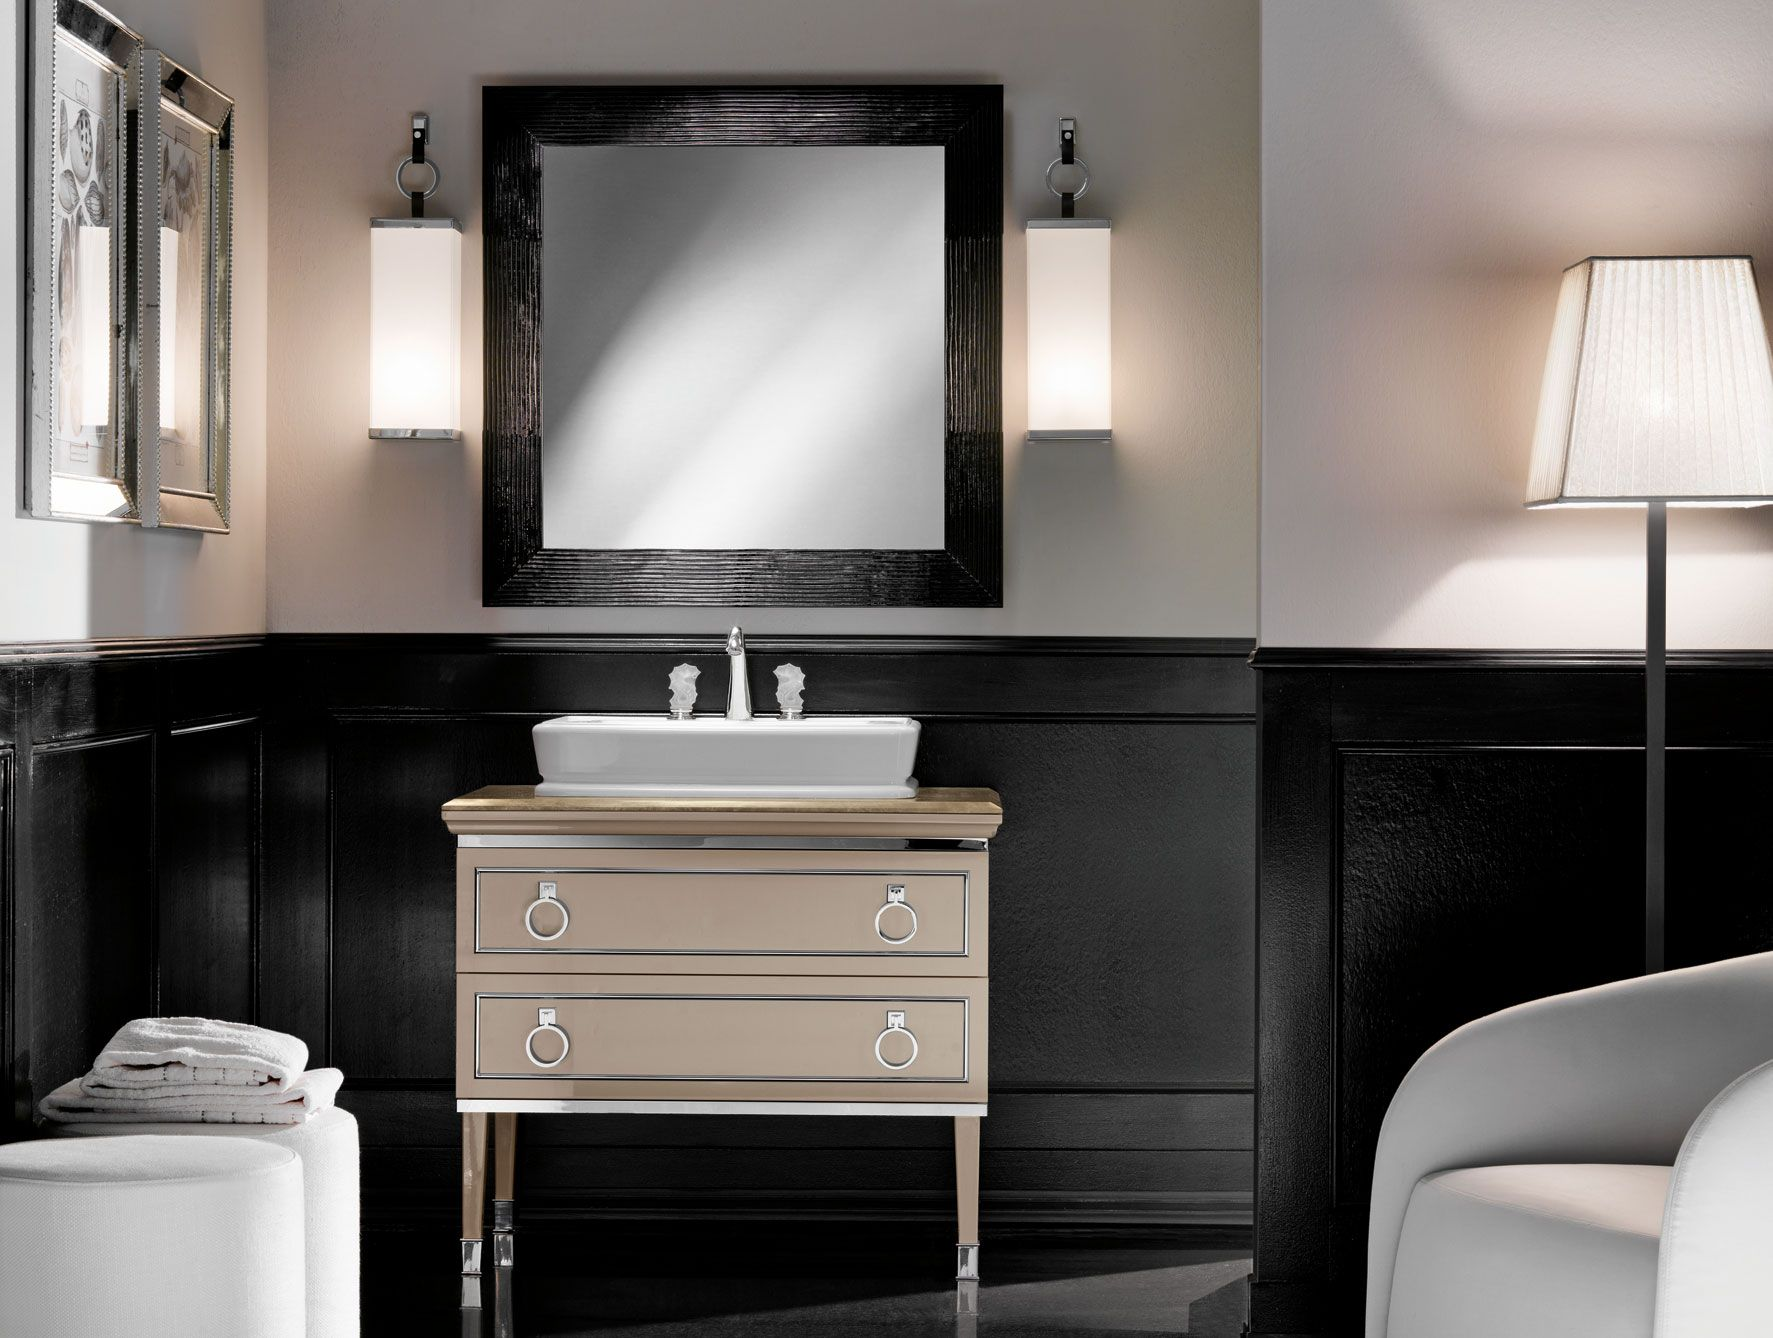 Web Image Gallery Lutetia traditional Italian Bathroom Vanity inspired by Art Deco design with lacquered base in beige with chrome metal silver trim